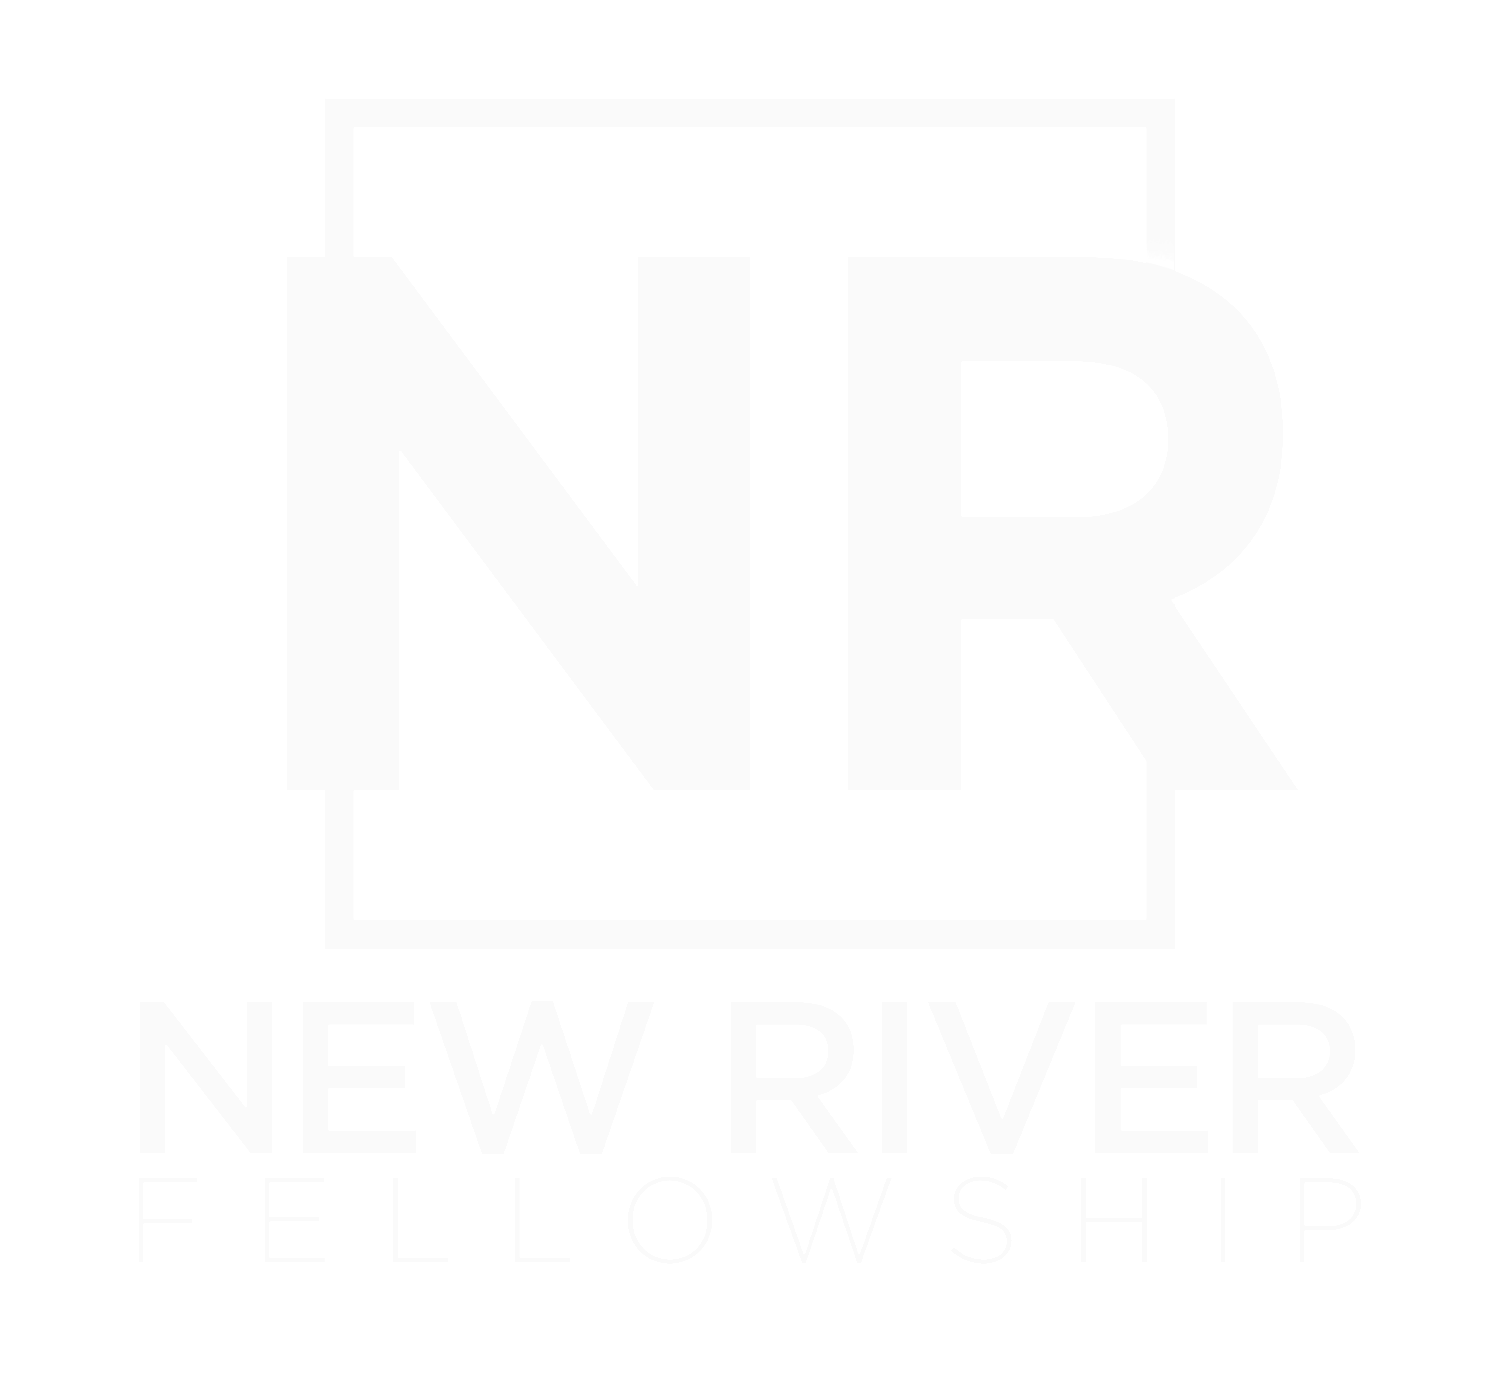 New River Fellowship